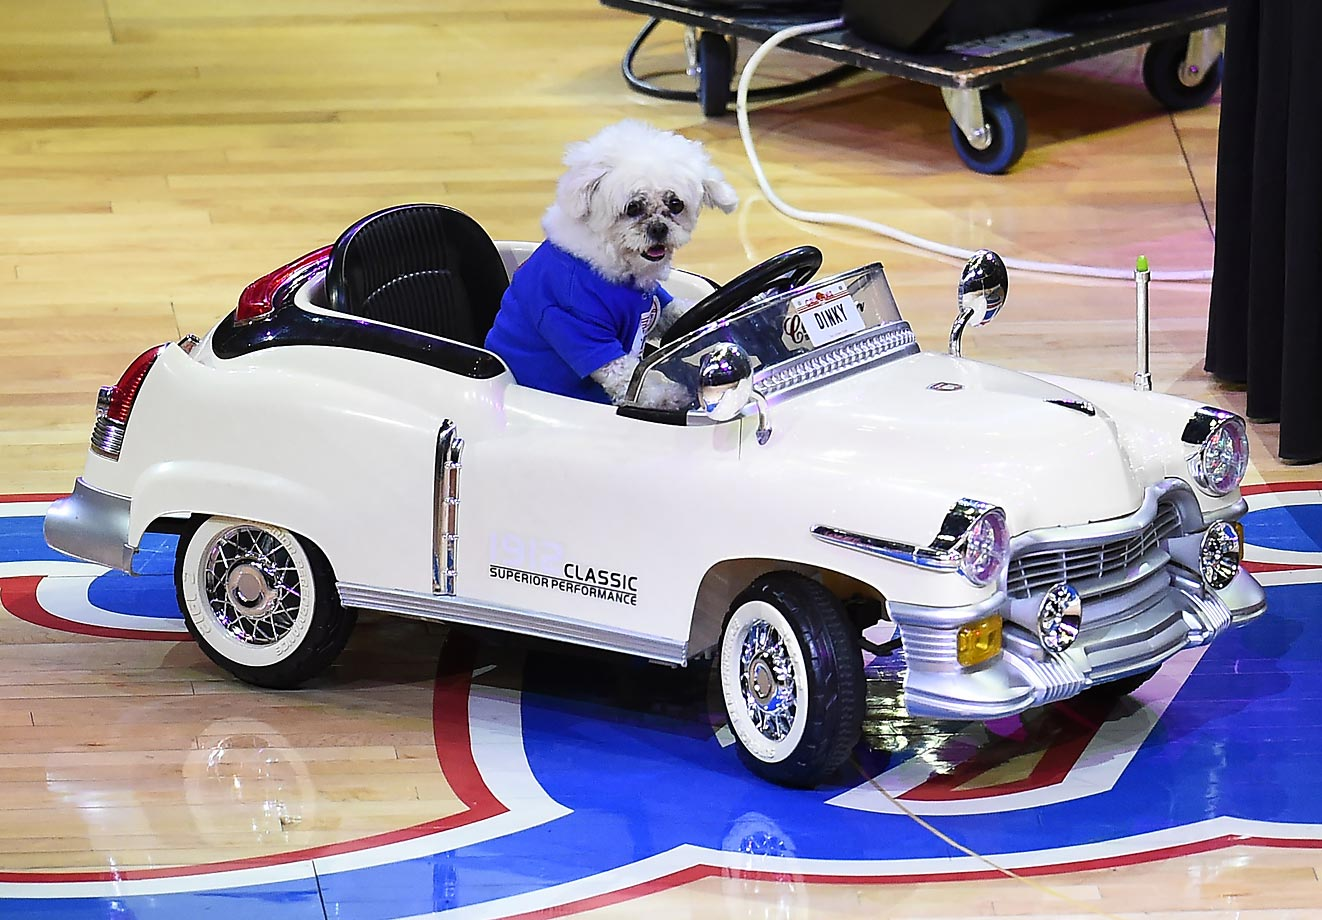 A dog performs during a halftime show at Staples Center.